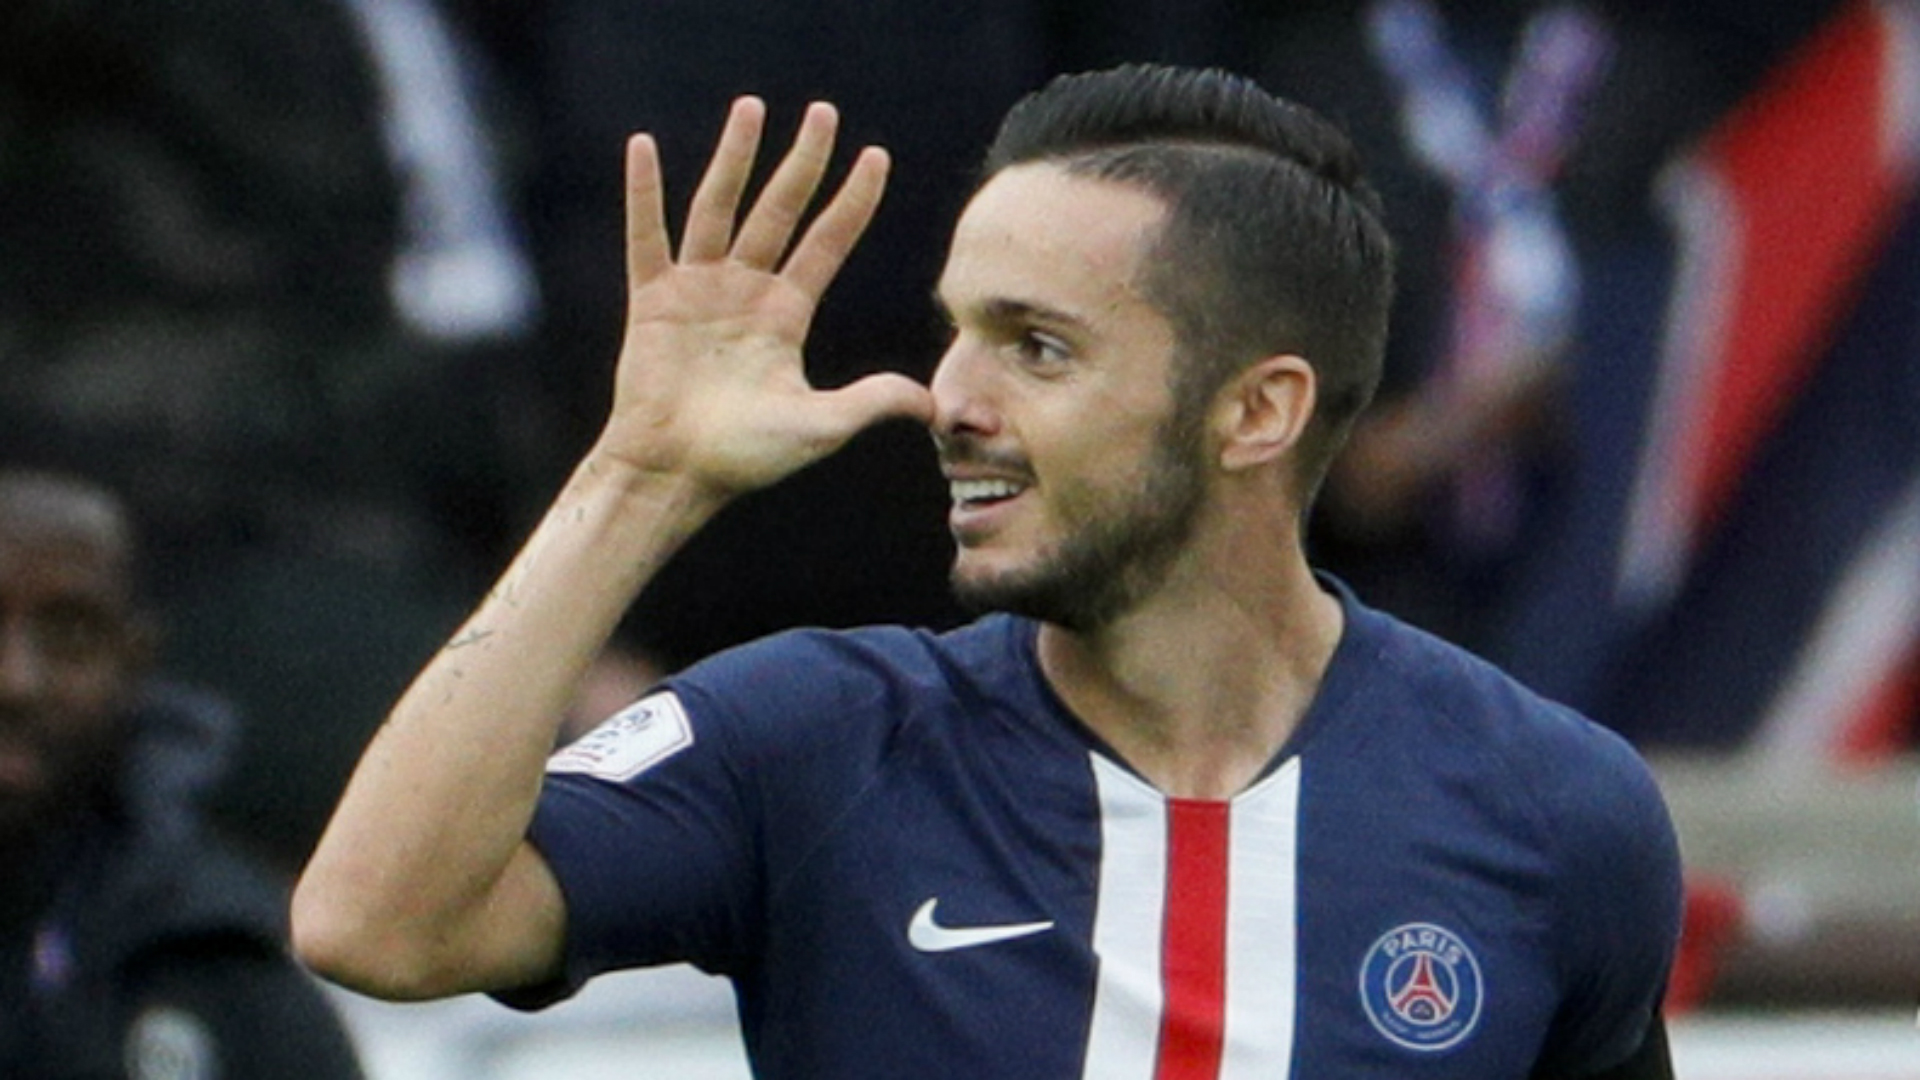 PSG's attack the best in the world, claims Sarabia